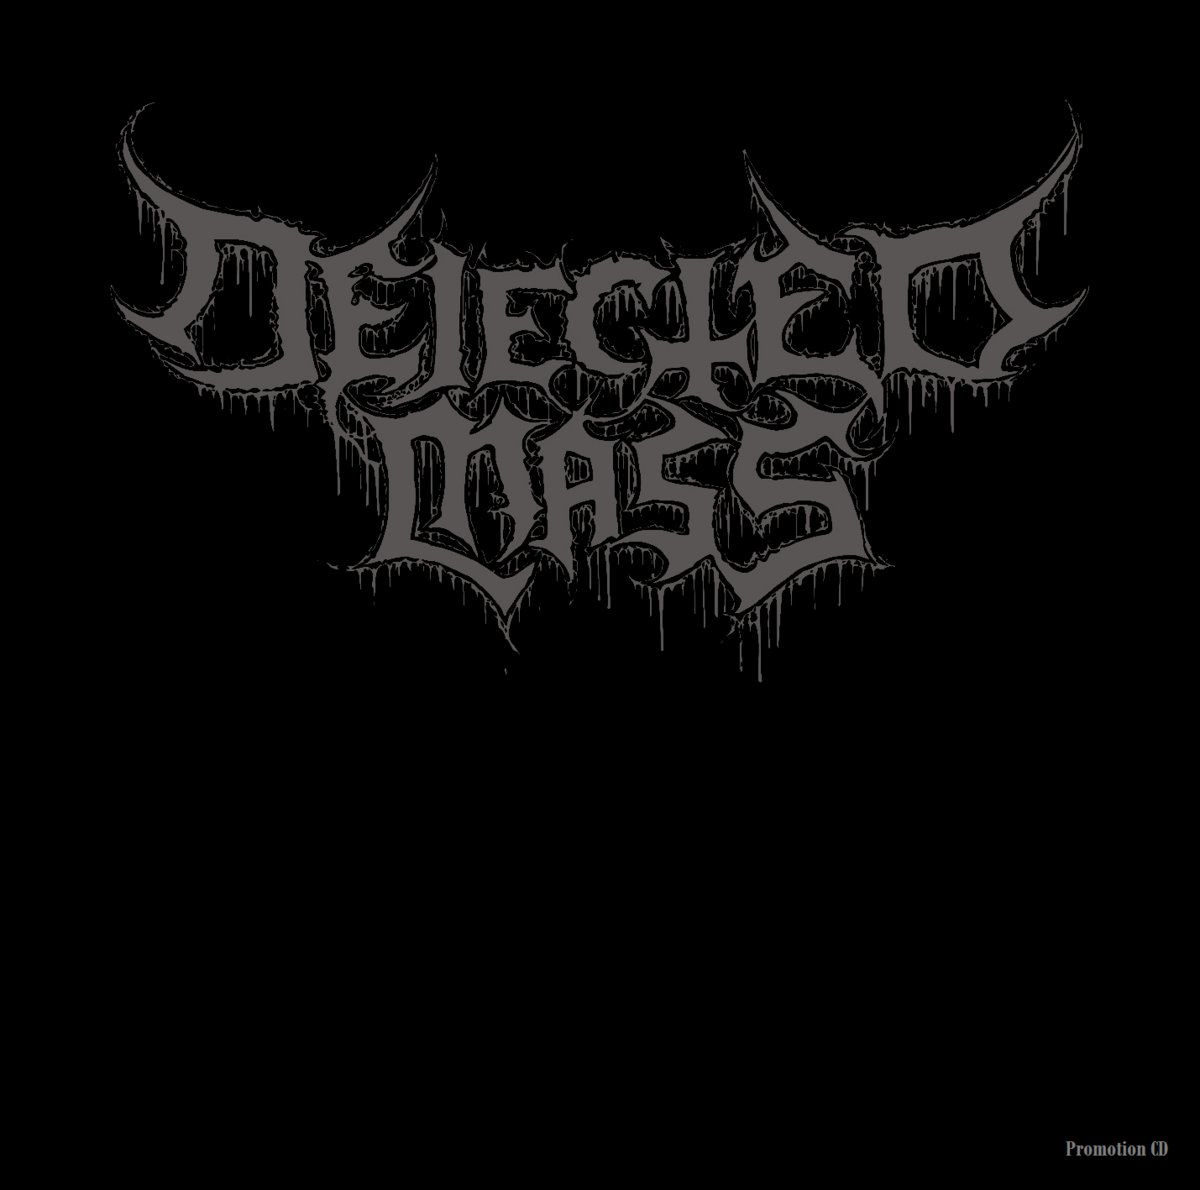 https://dejectedmass.bandcamp.com/album/dejected-mass-demo